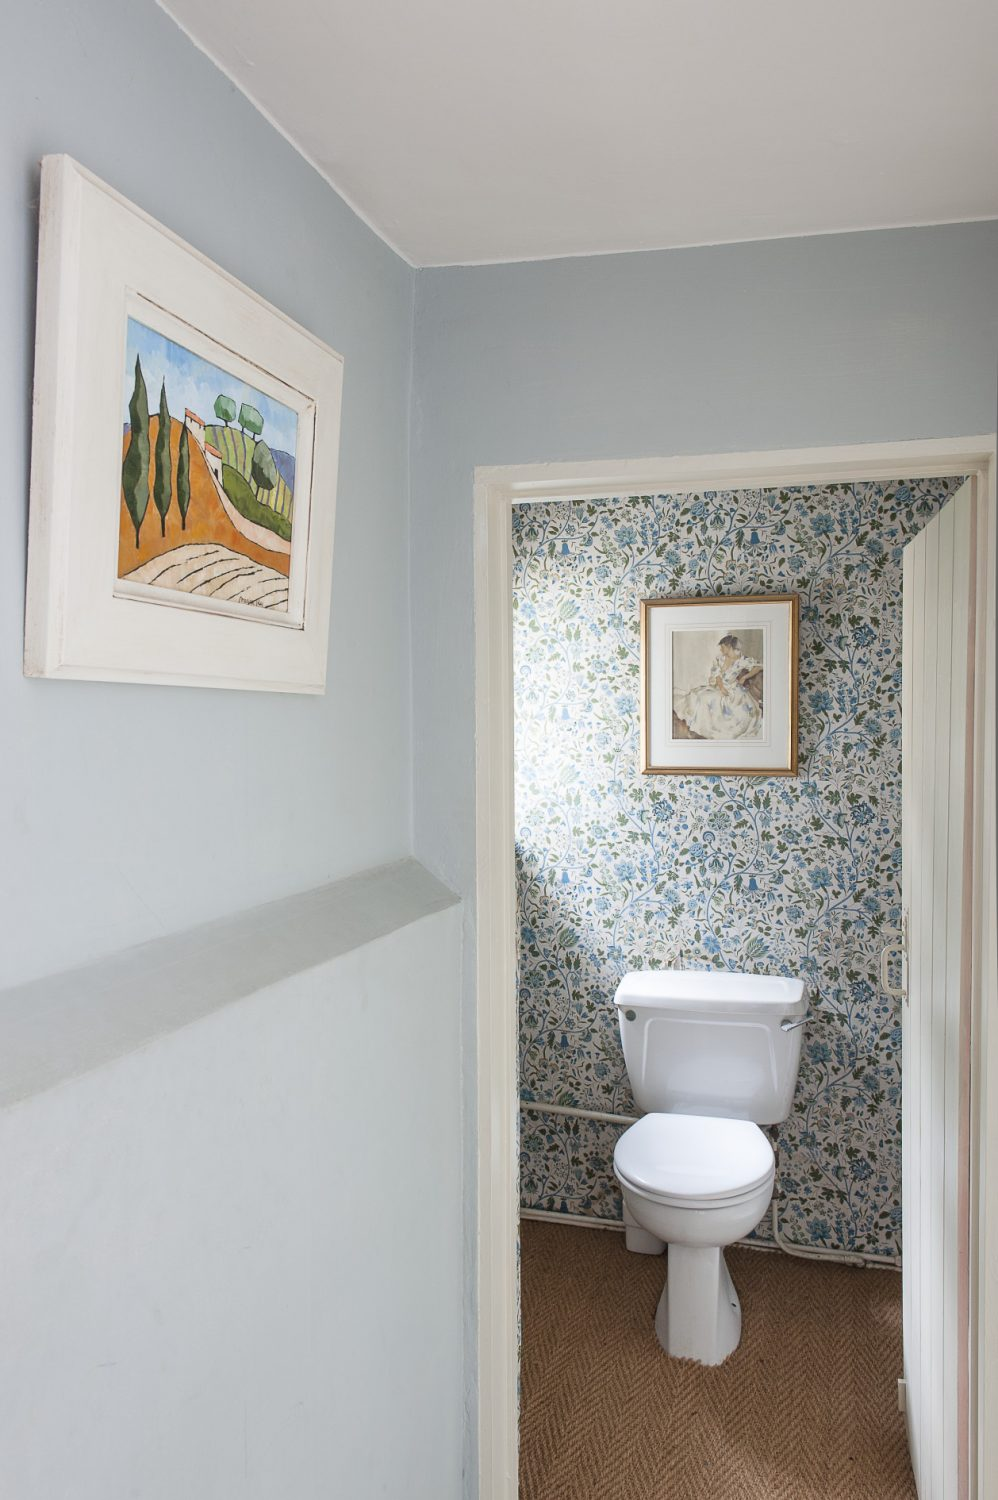 An upstairs loo remains decorated in the original blue floral wallpaper chosen by a previous owner